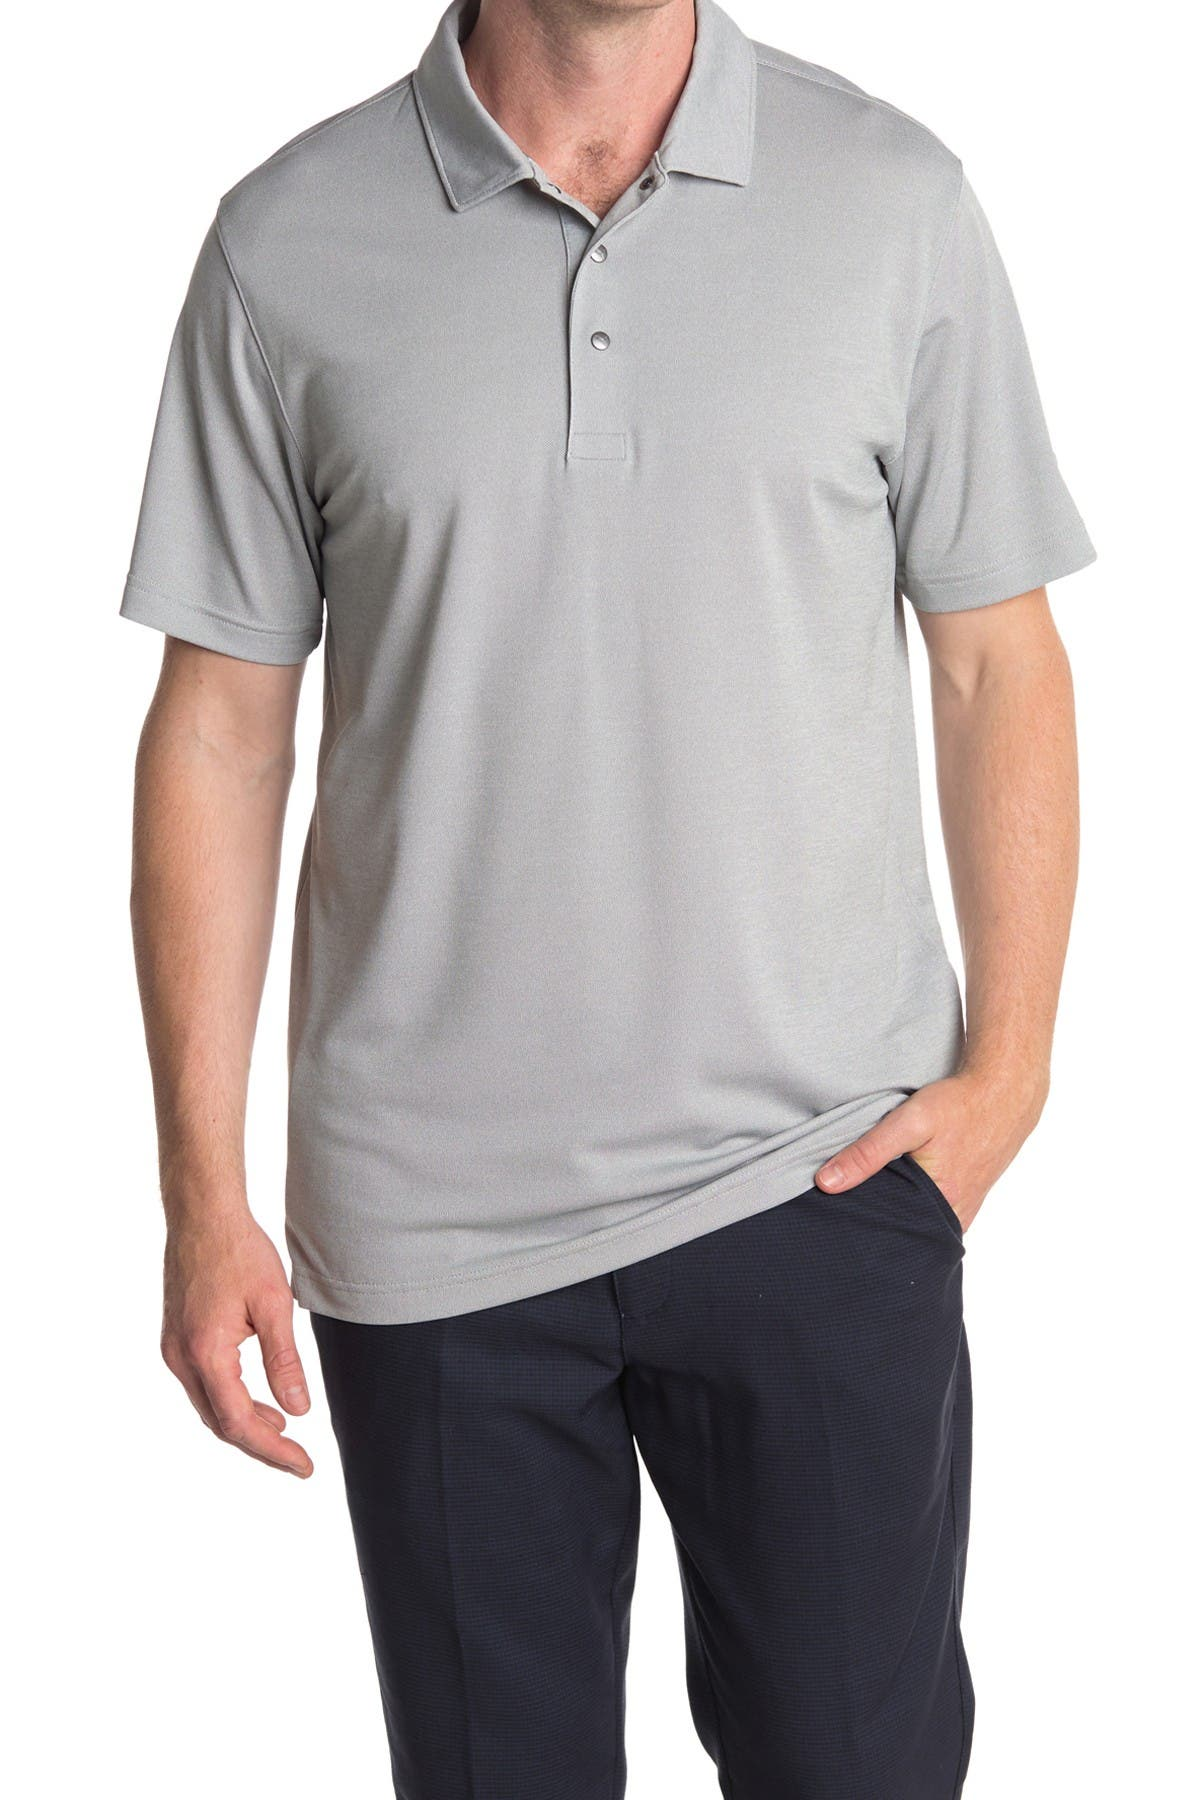 Image of PUMA Grey Grill to Green Golf Polo